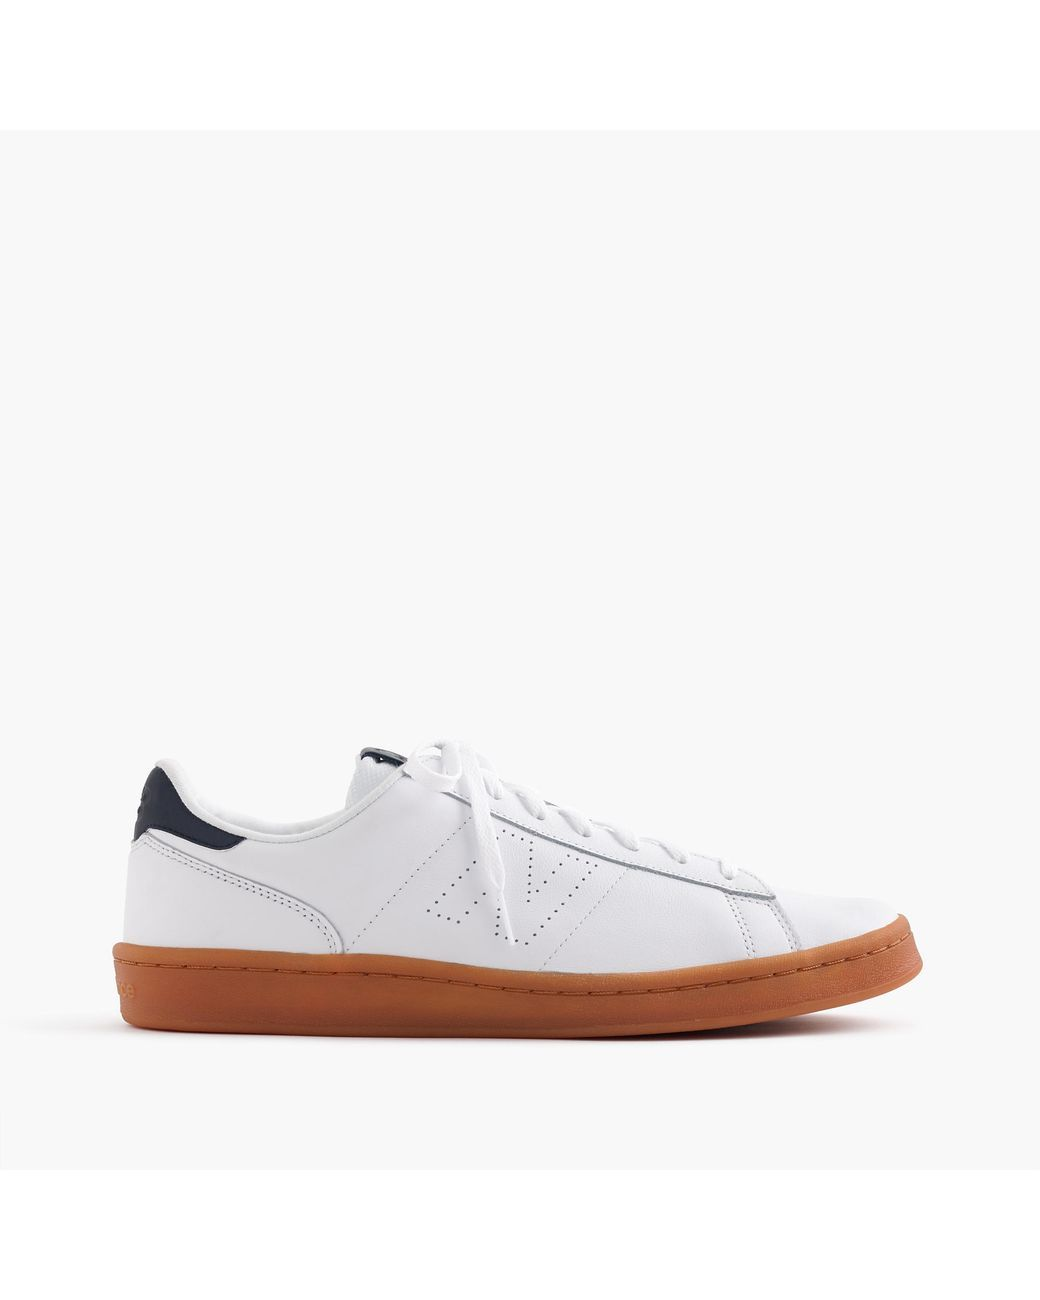 81e6afd64dc06f Men s White 791 Leather Sneakers in 2019